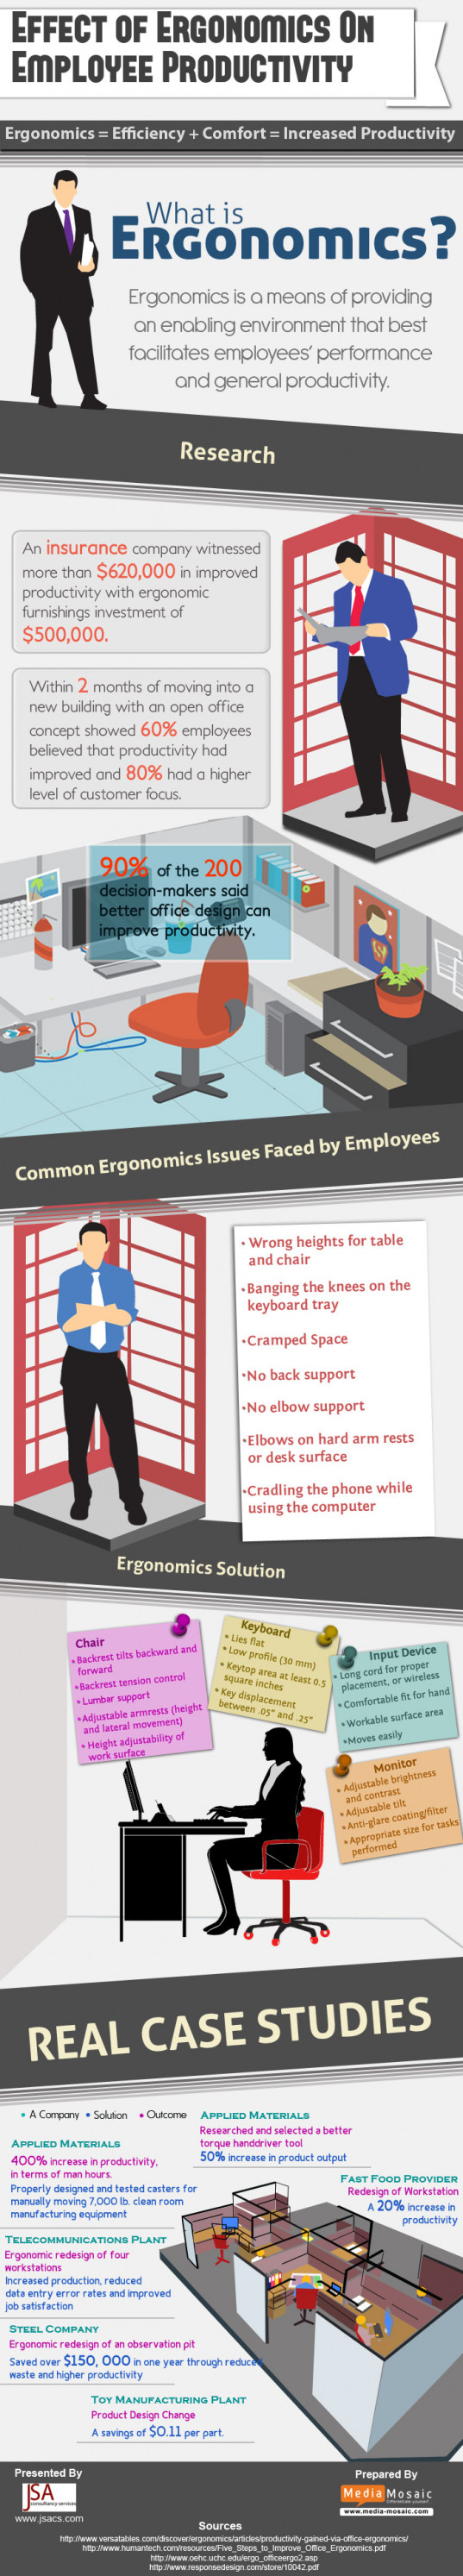 Effect of Ergonomics on Employee Productivity